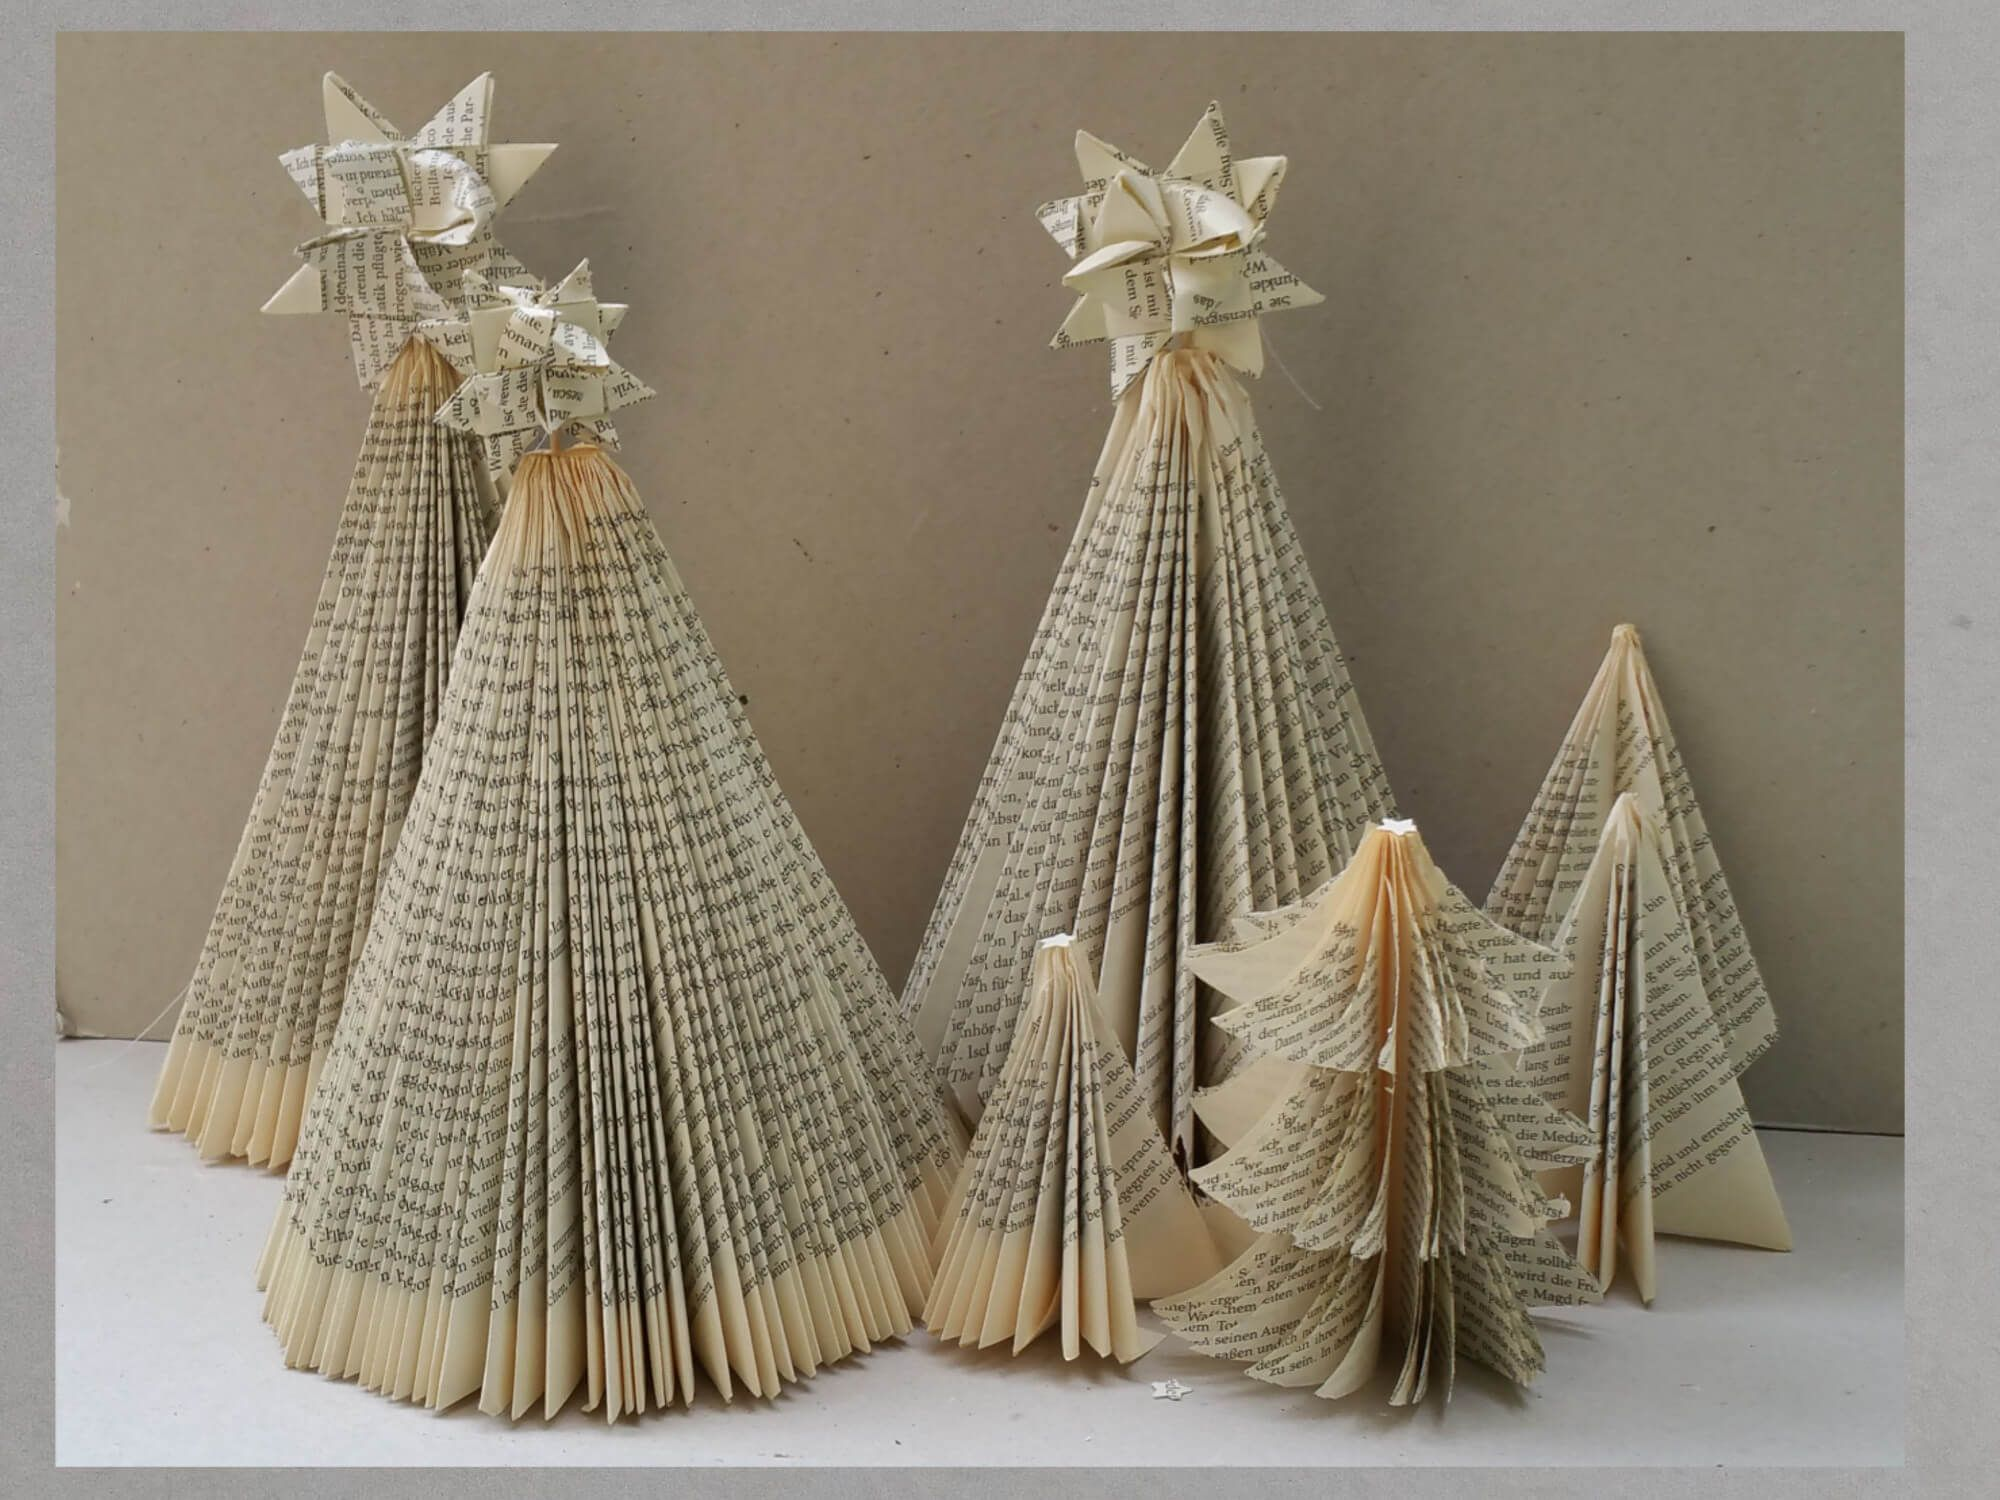 diy weihnachtsbaum aus buch falten books recycling art pinterest weihnachten. Black Bedroom Furniture Sets. Home Design Ideas